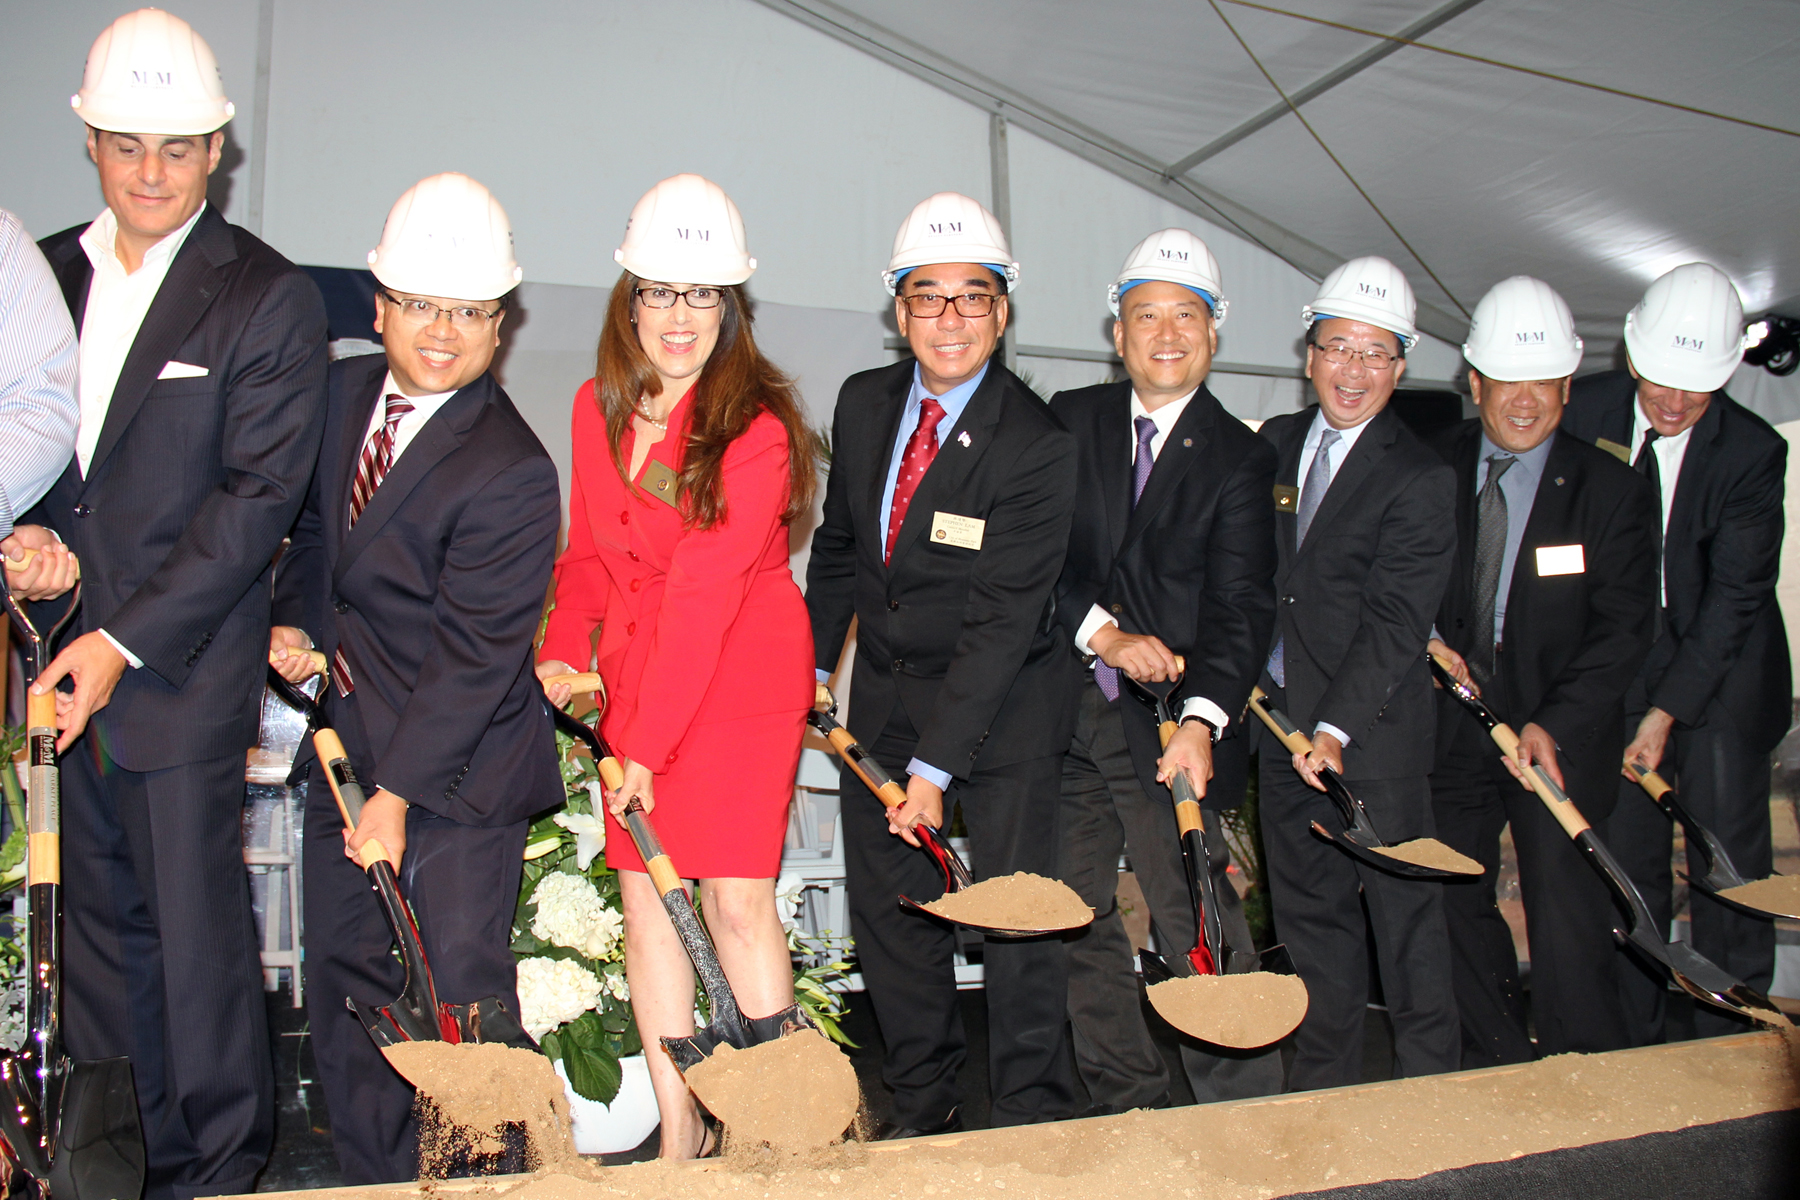 city council with shovels groundbreaking 20161116 v2 300ppi.jpg